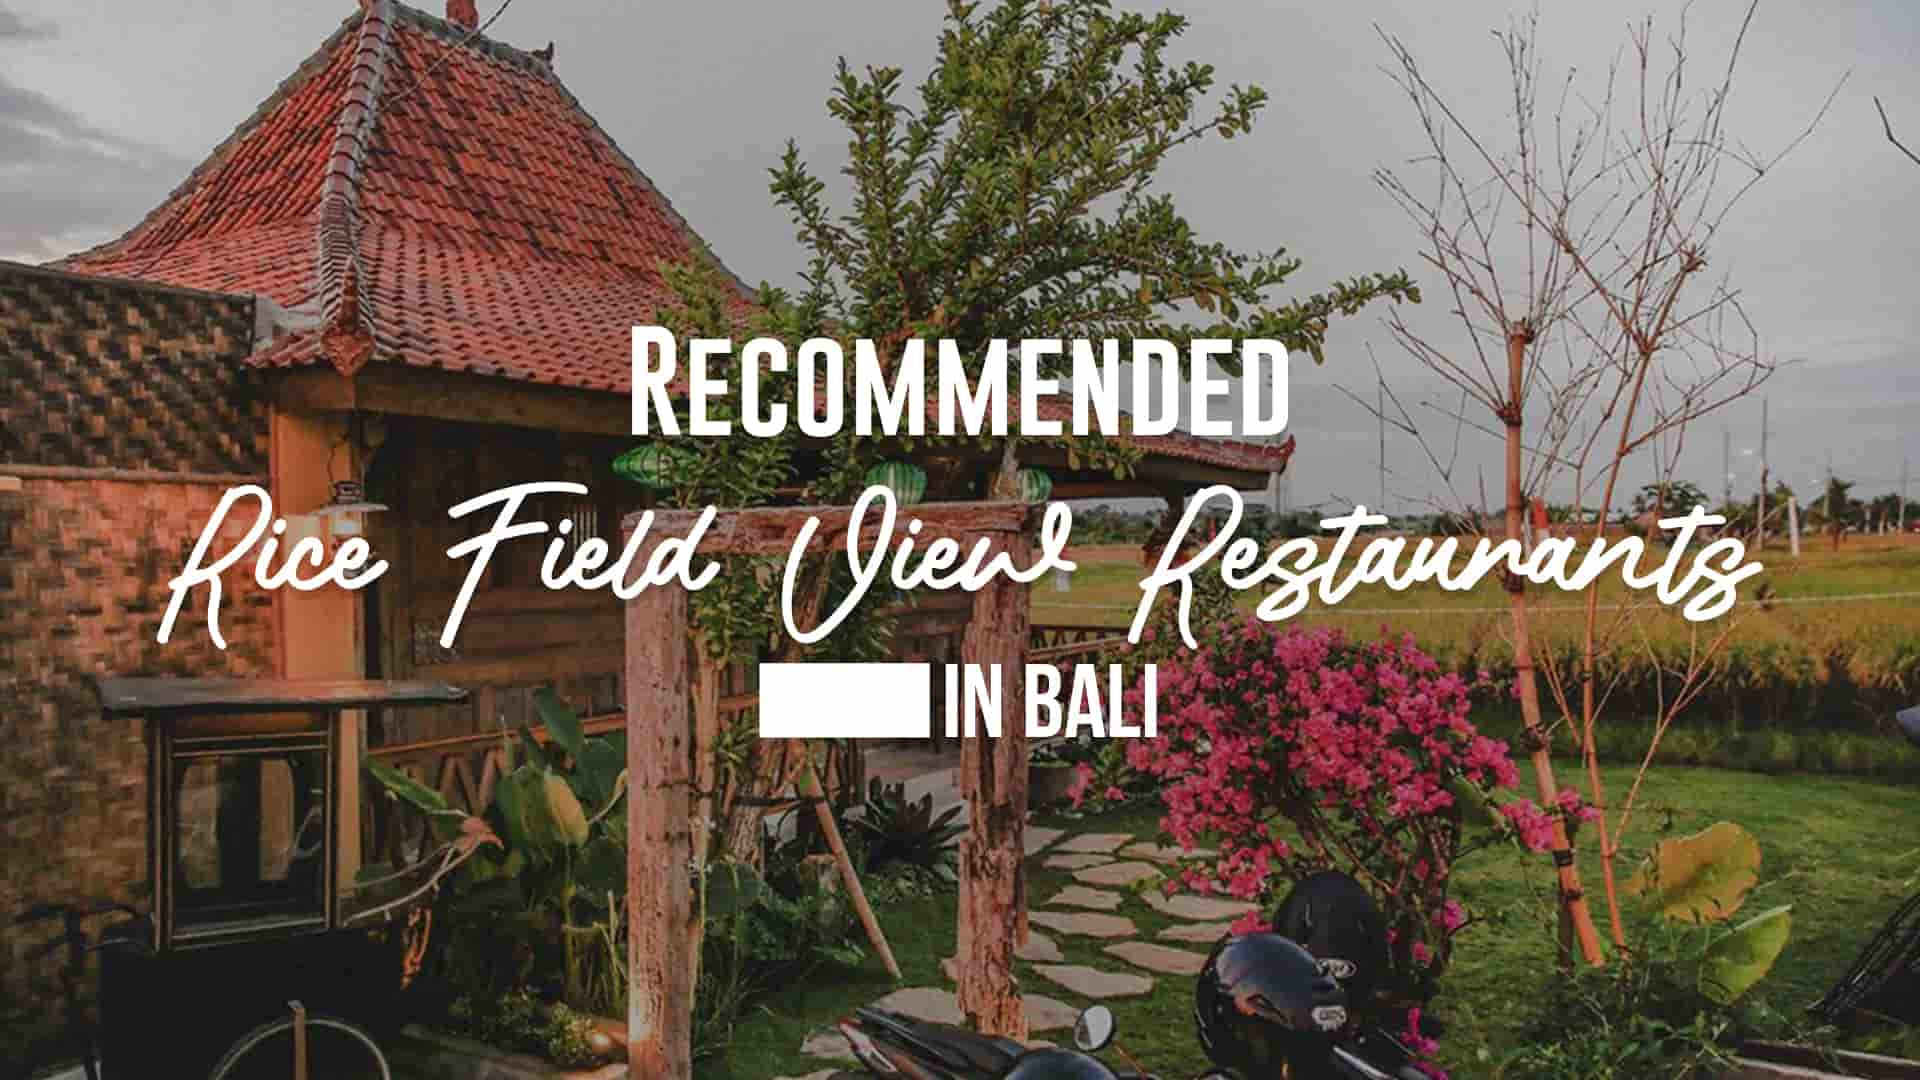 Recommended Rice Field View Restaurants in Bali